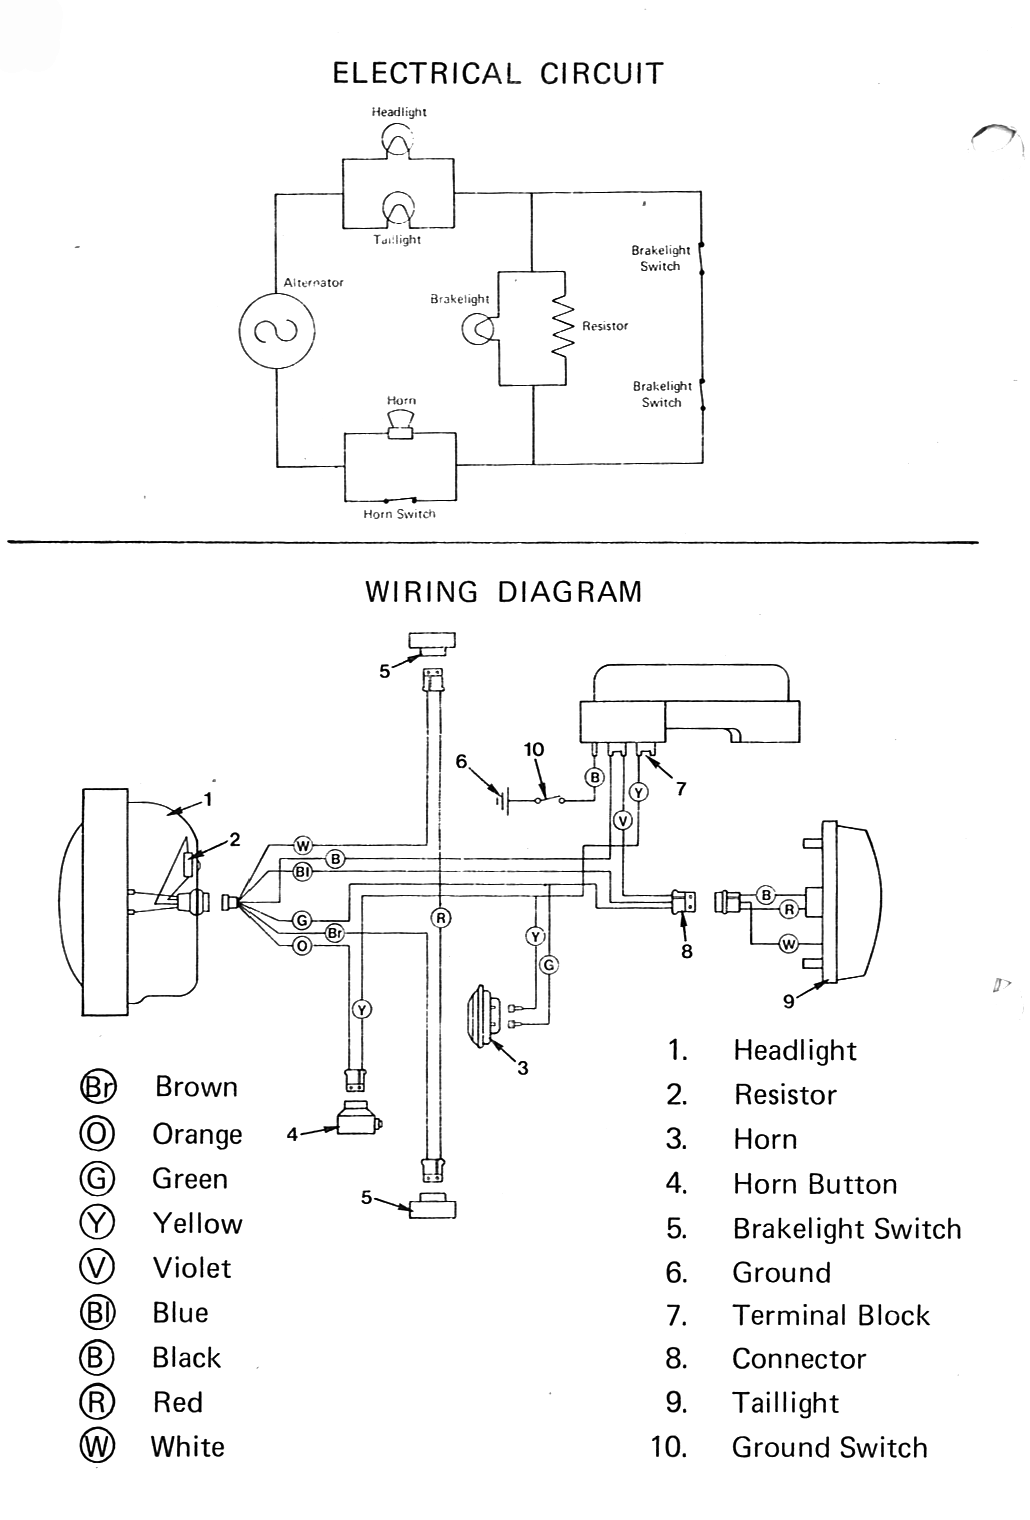 1980 Yamaha Qt50 Wiring Diagram Not Lossing Qt 50 List Of Diagrams Moped Wiki Rh Mopedarmy Com Xs1100